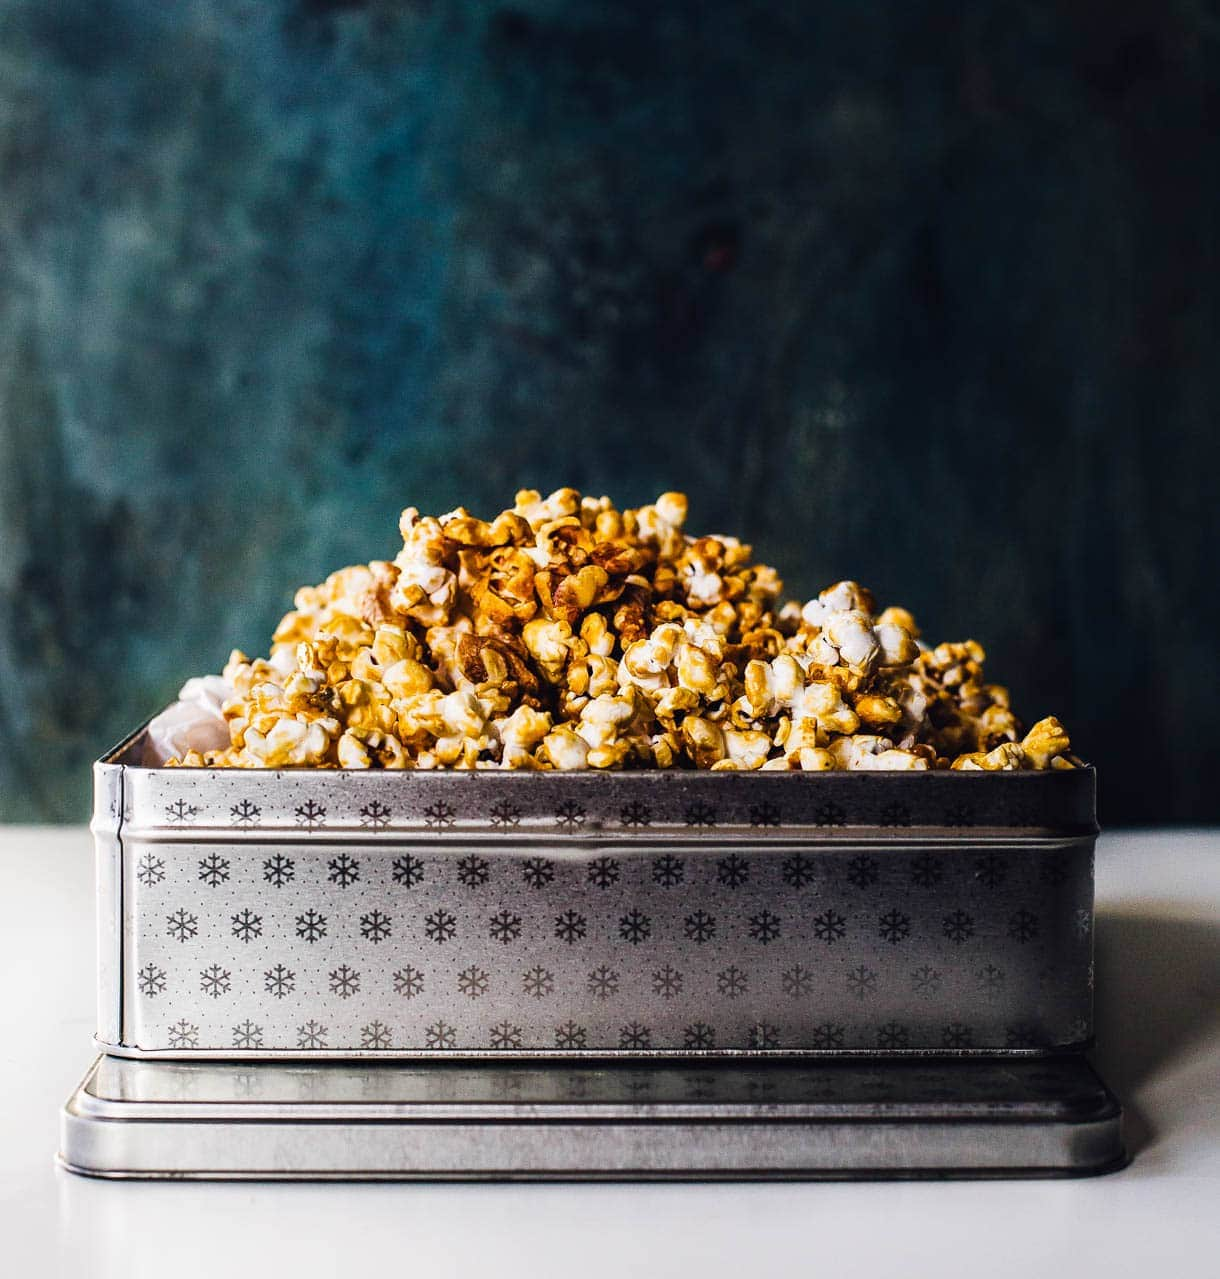 Healthier Homemade Caramel Corn made with maple syrup and walnuts